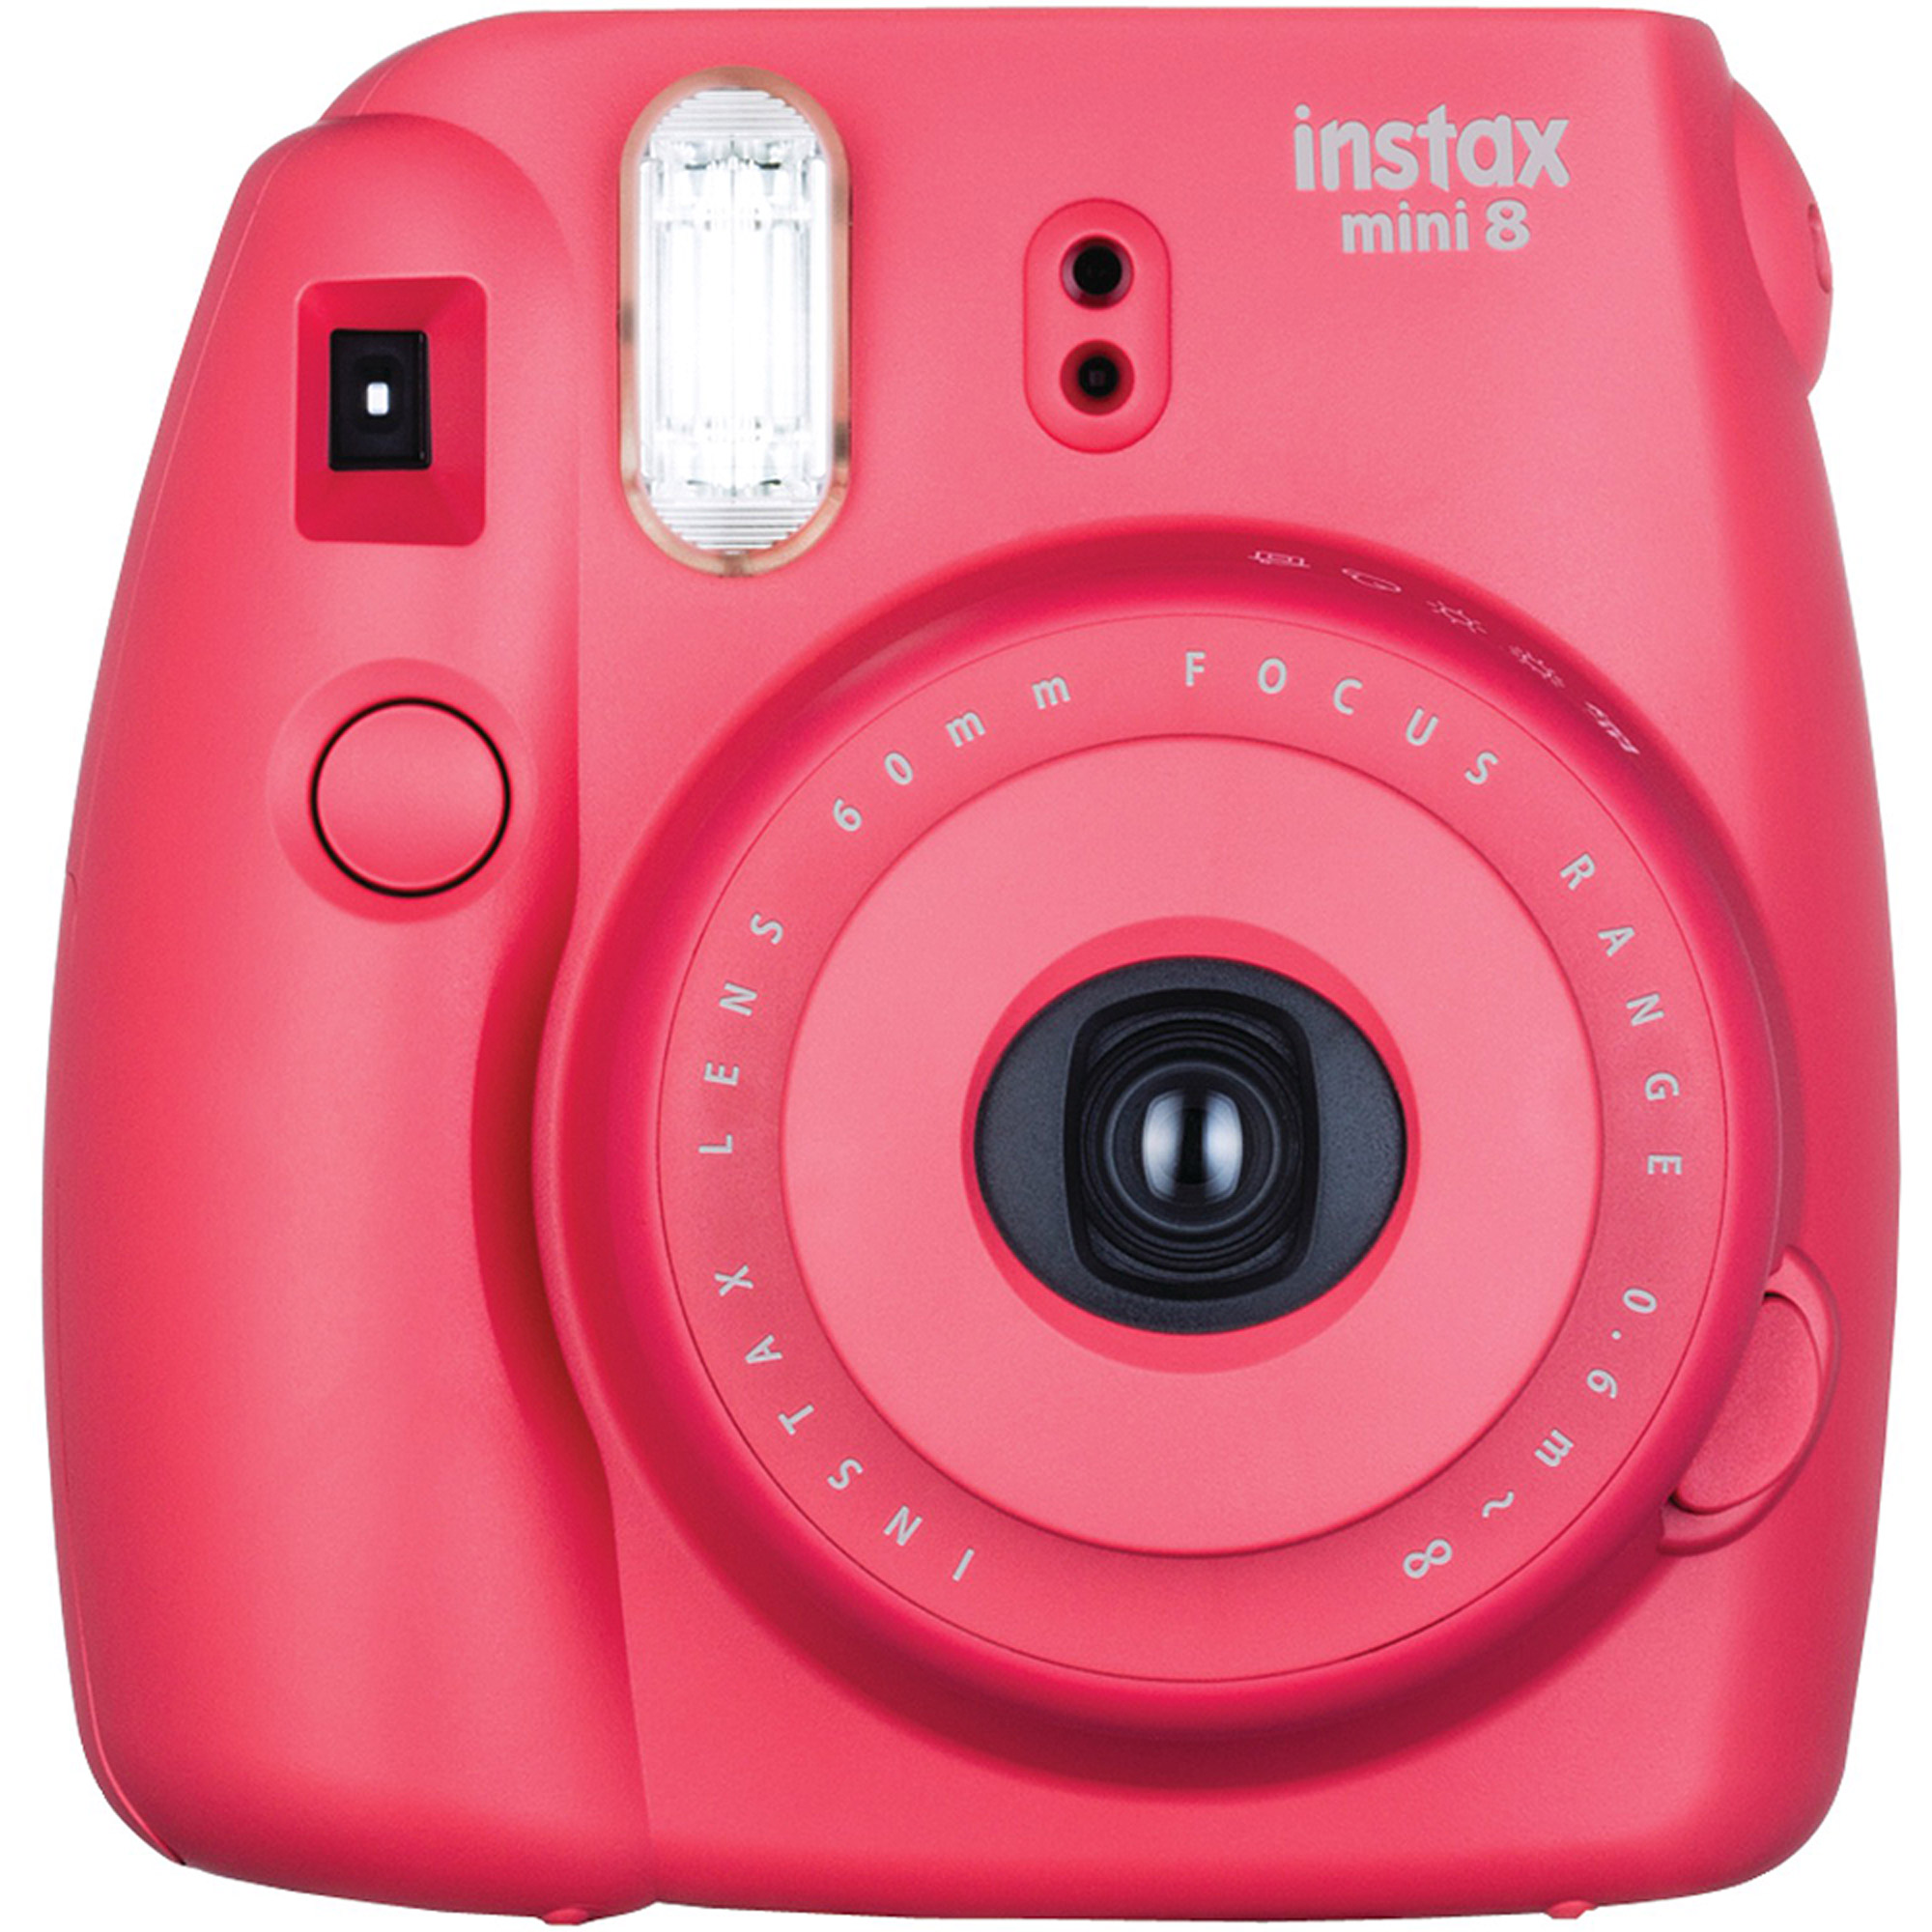 instax mini 7s how to use